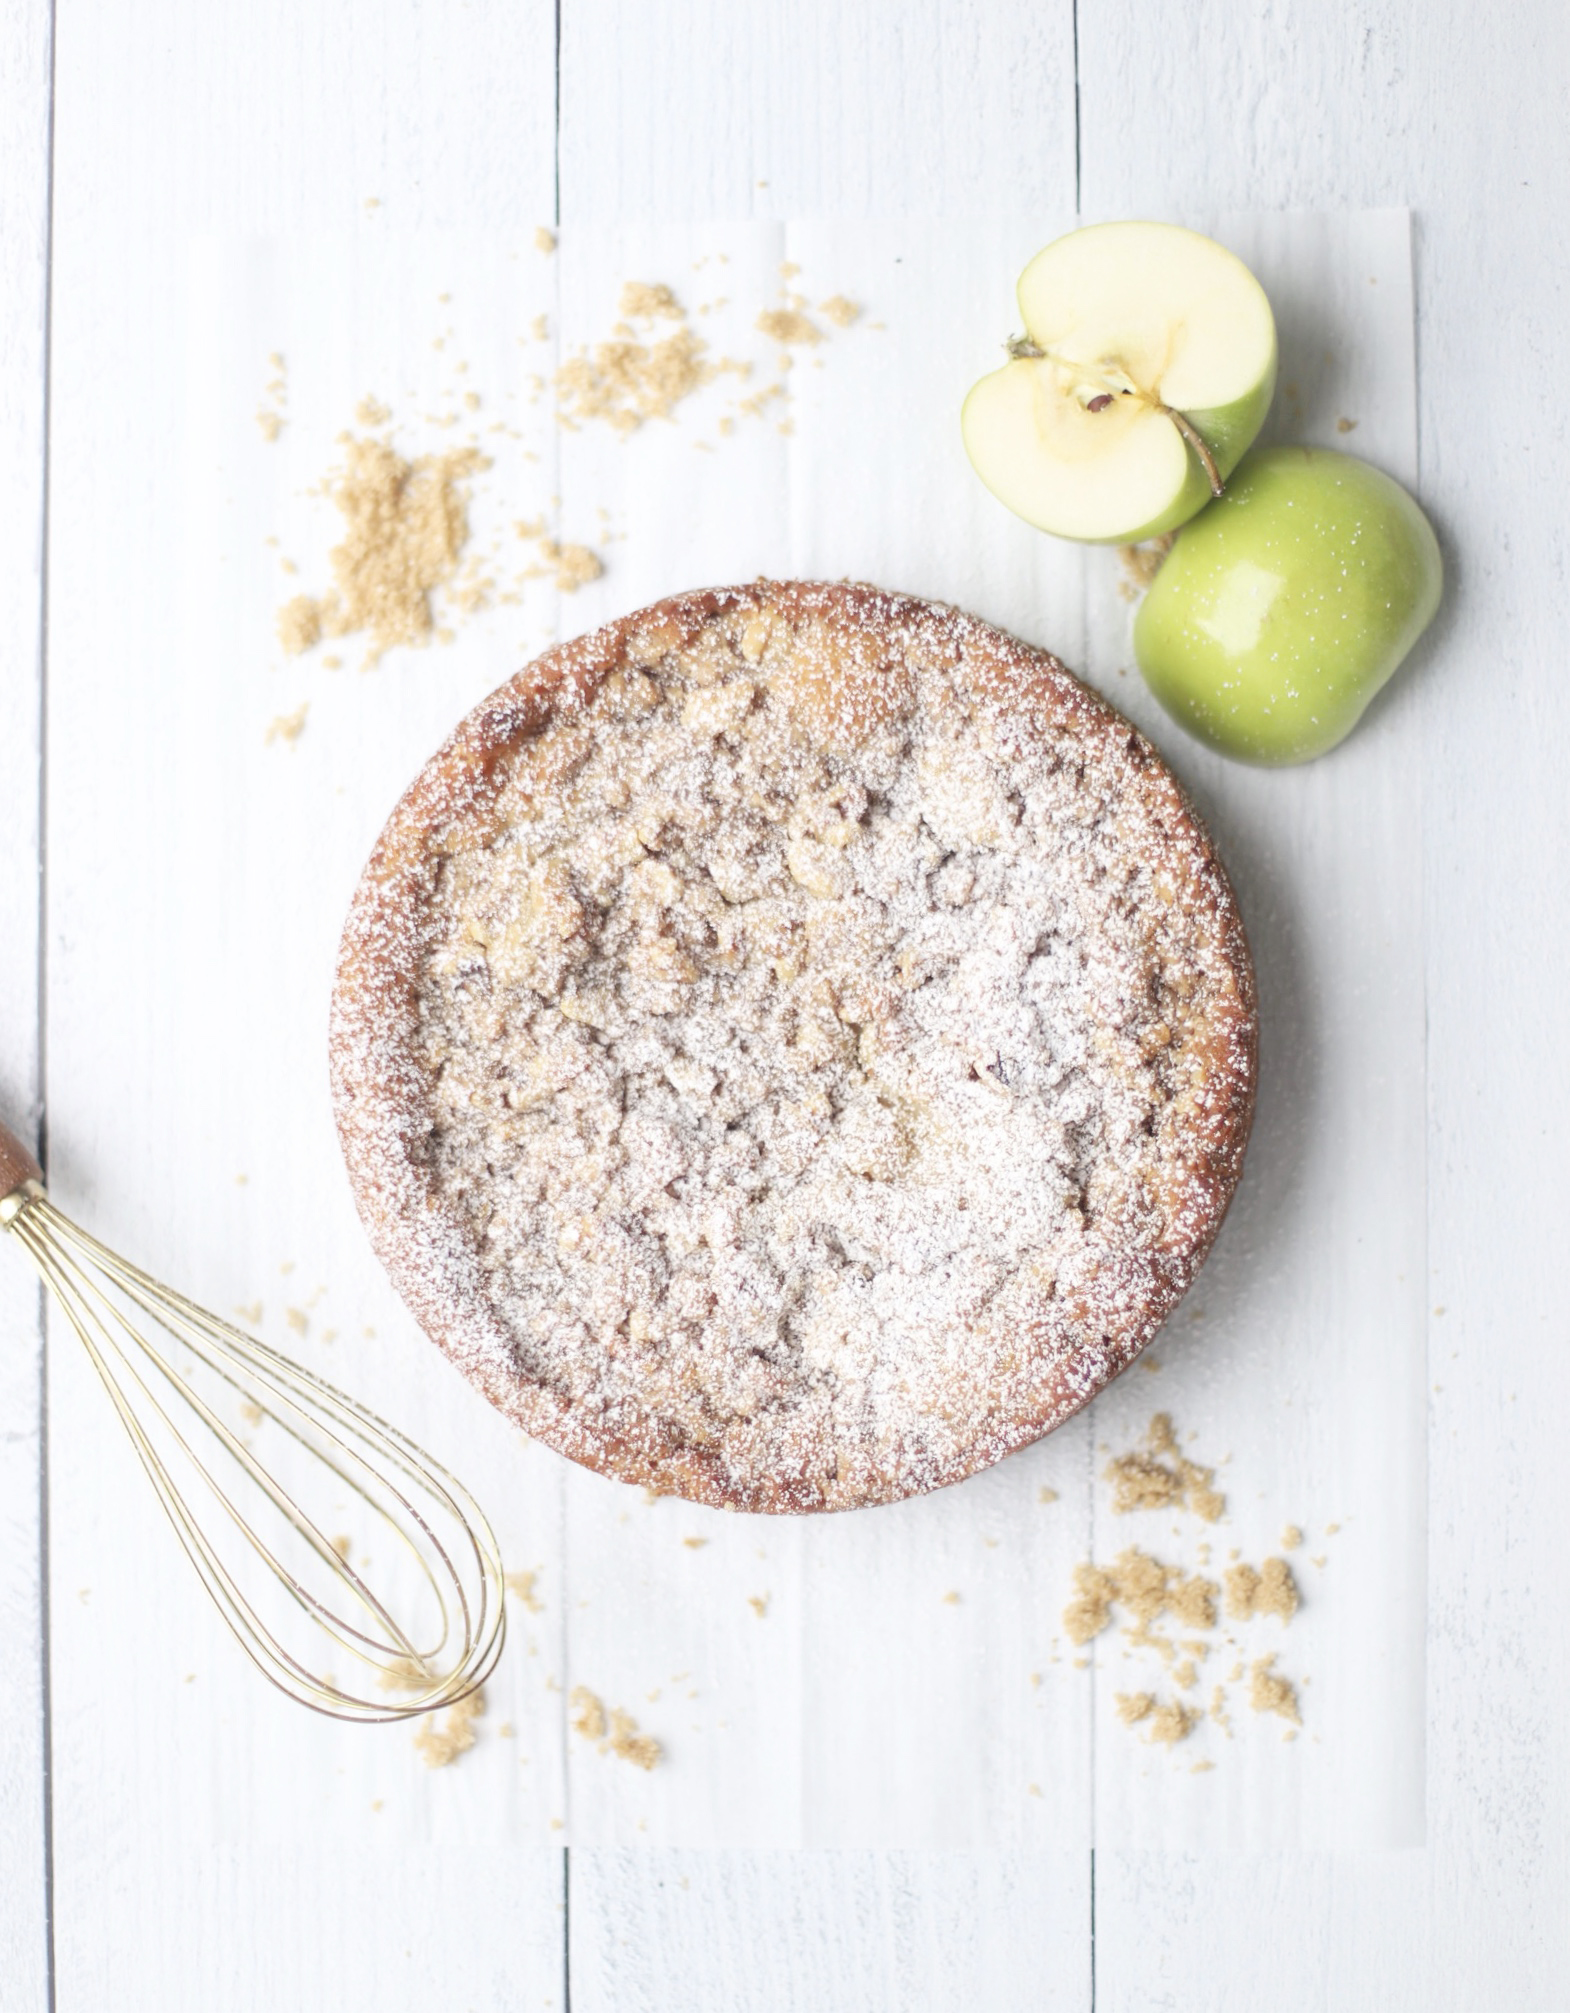 apple crumb cake topped with powdered sugar